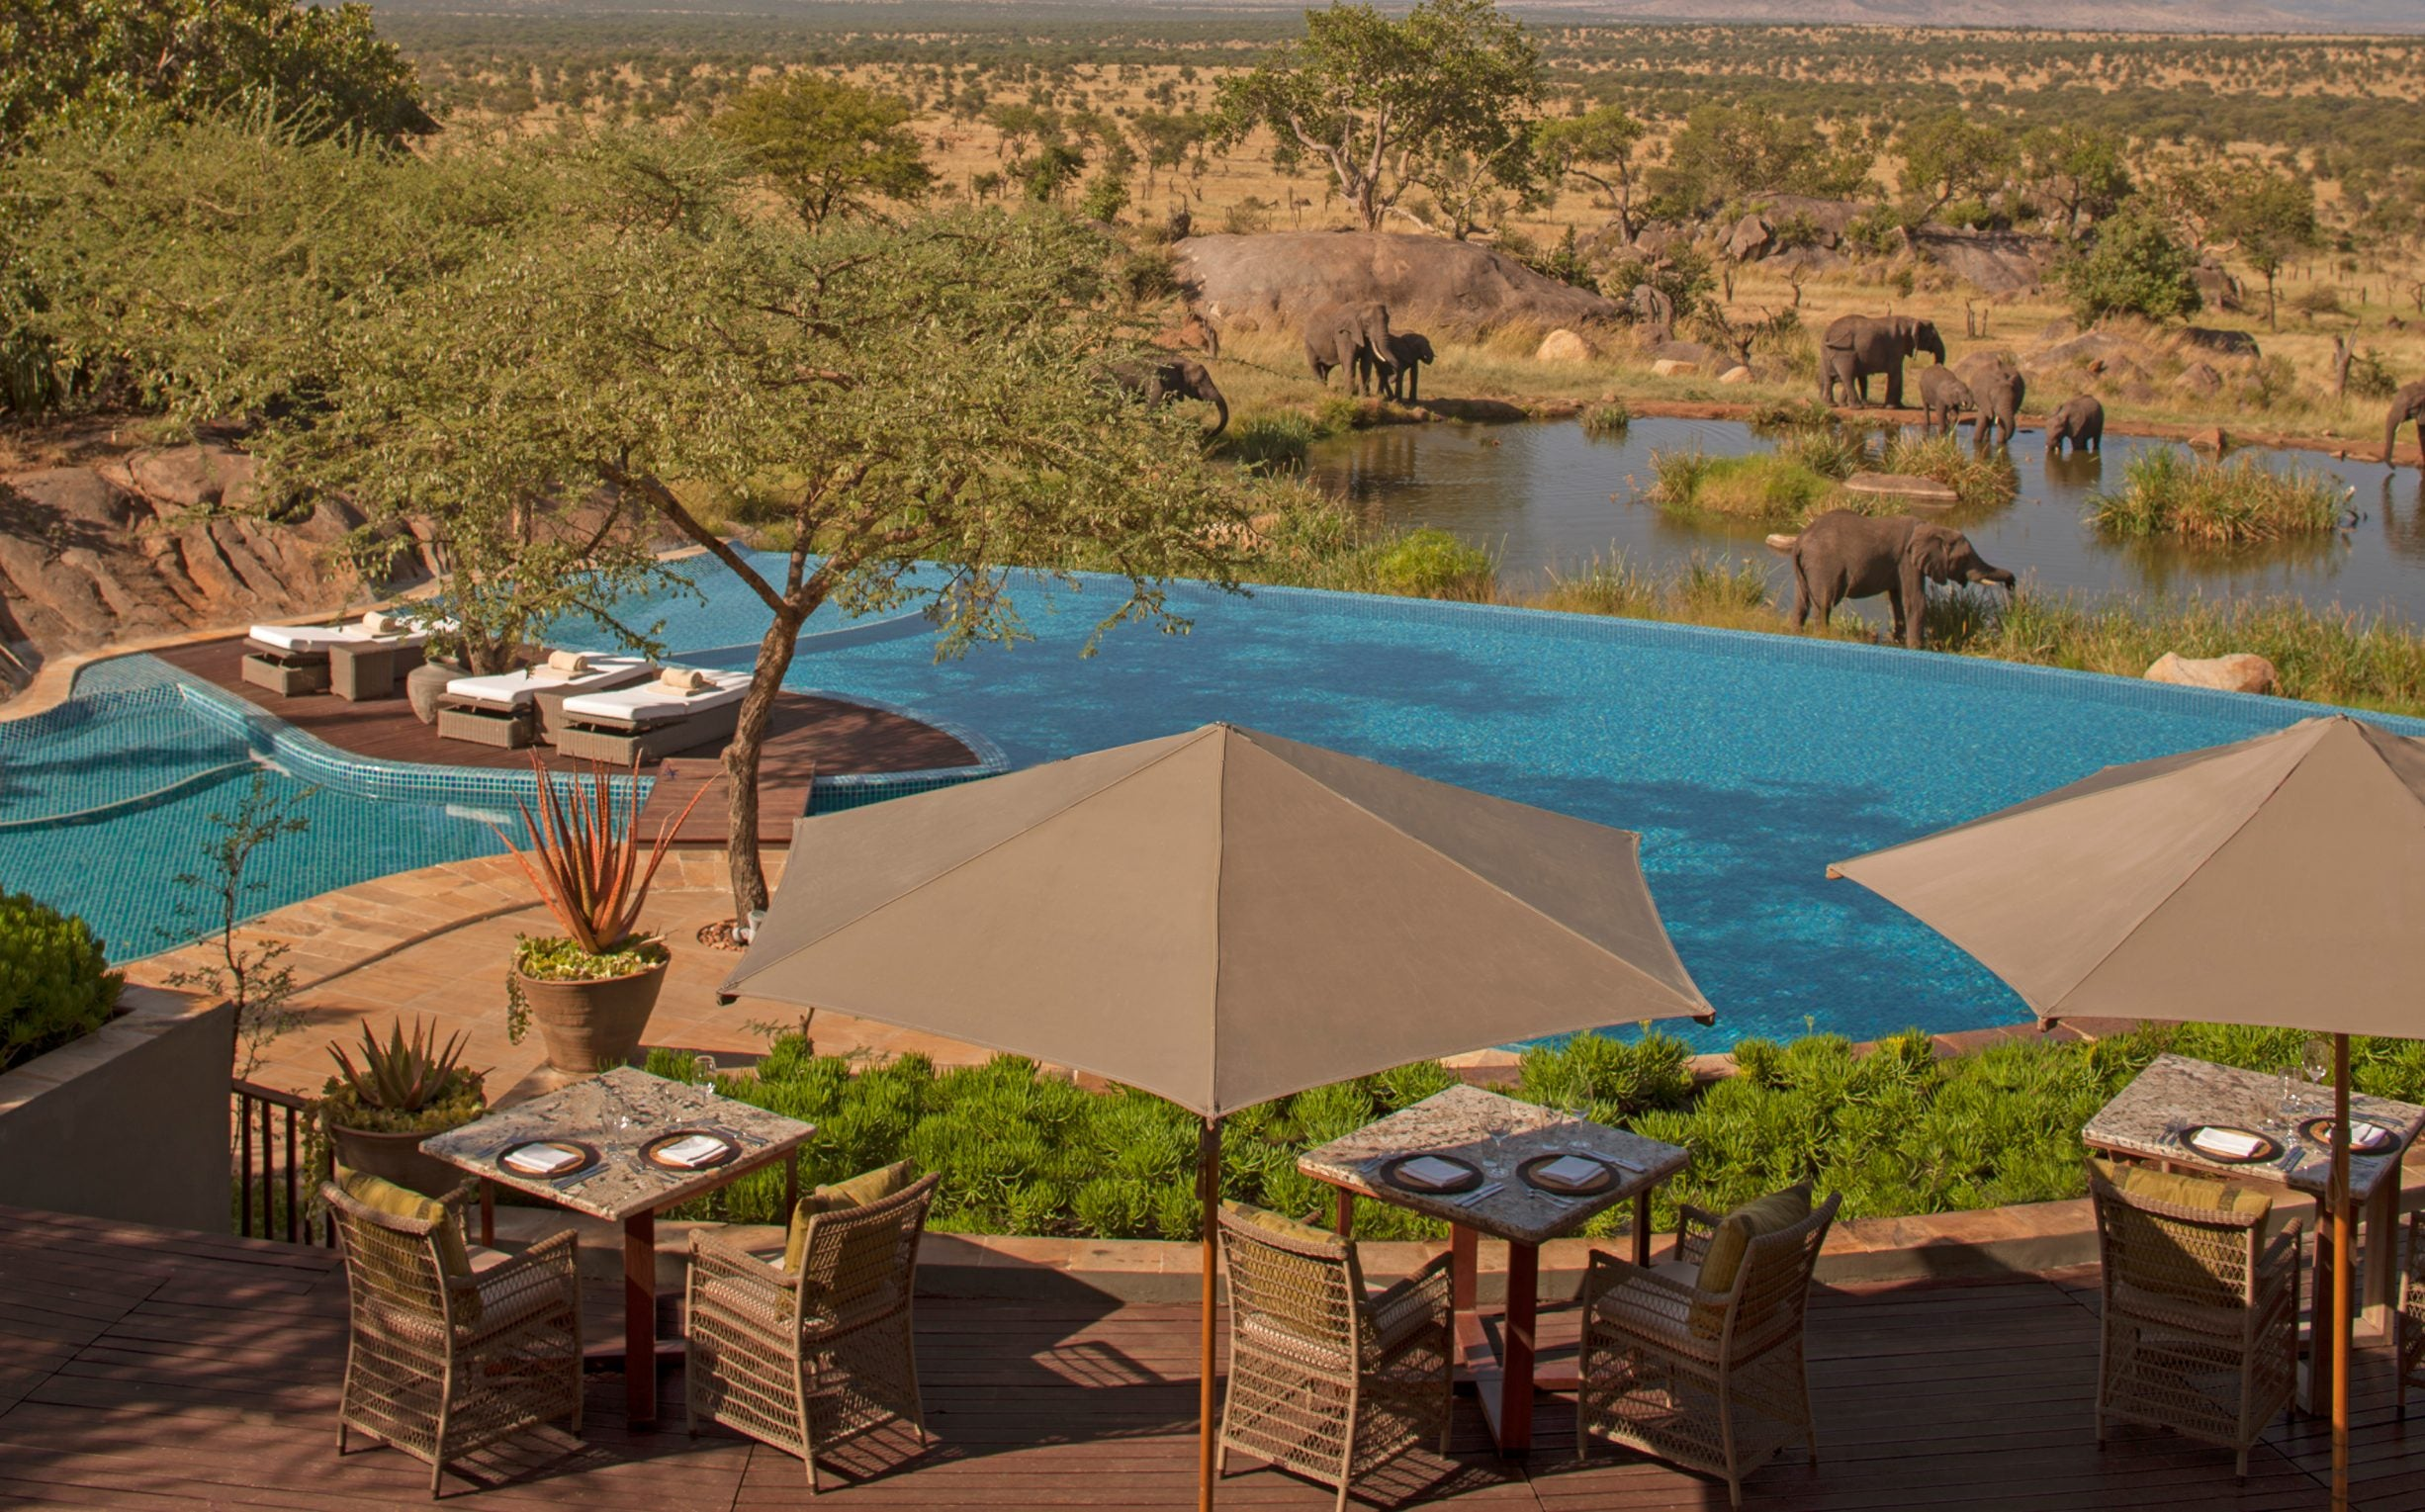 10 Best Hotel Swimming Pools Around The World - Four Seasons Safari Lodge Serengeti - LuxDeco.com Style Guide